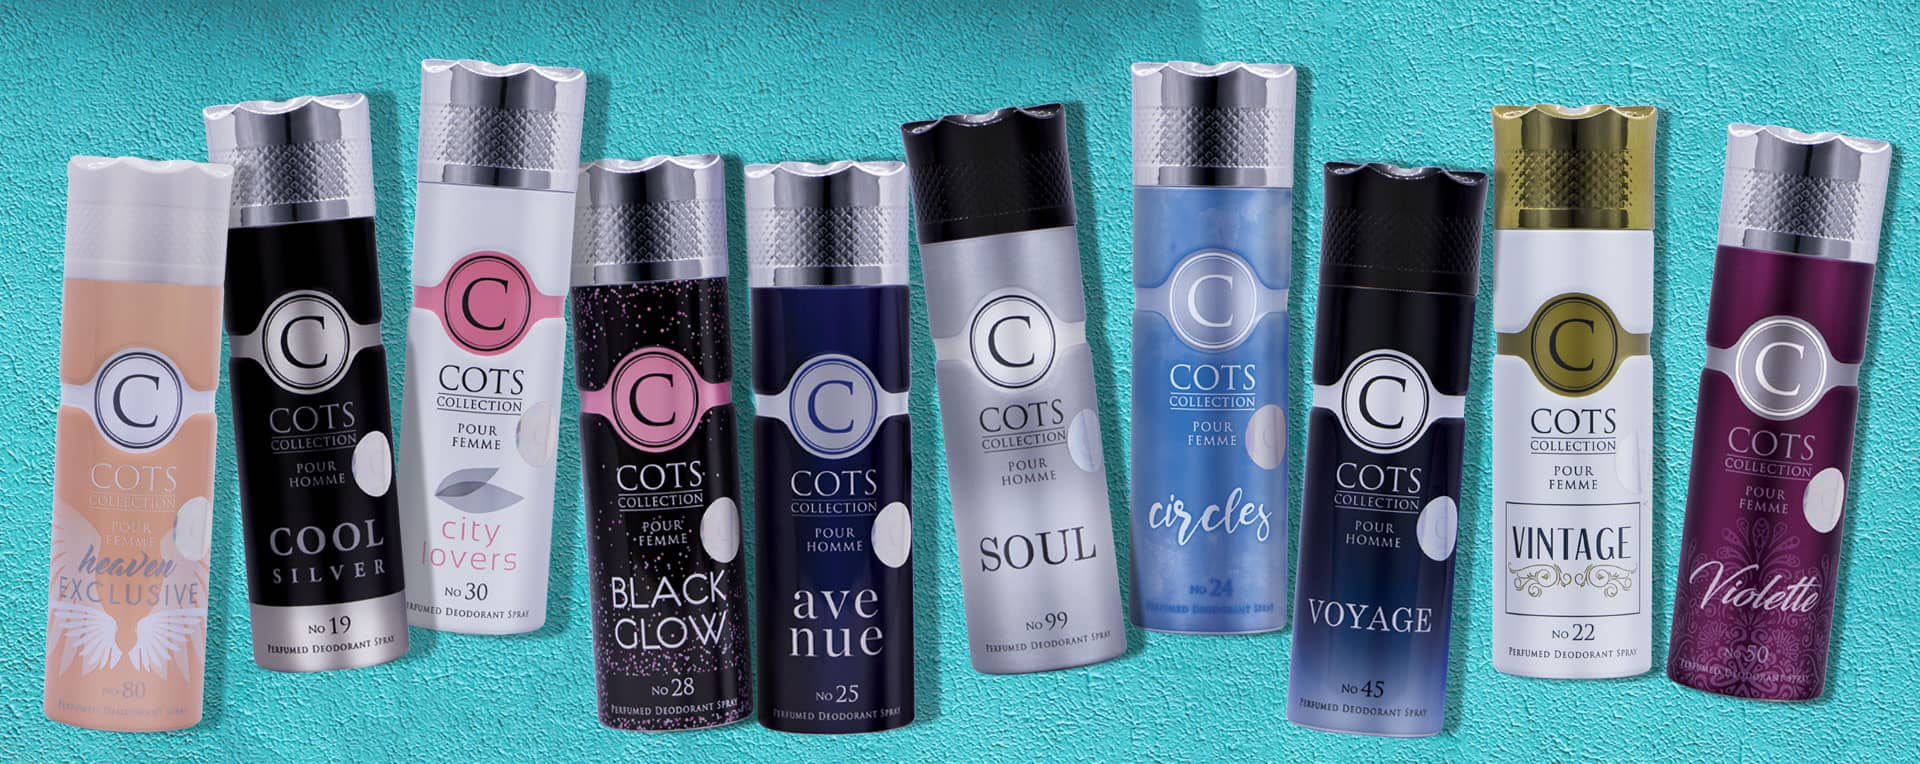 Cots Women Deodorants